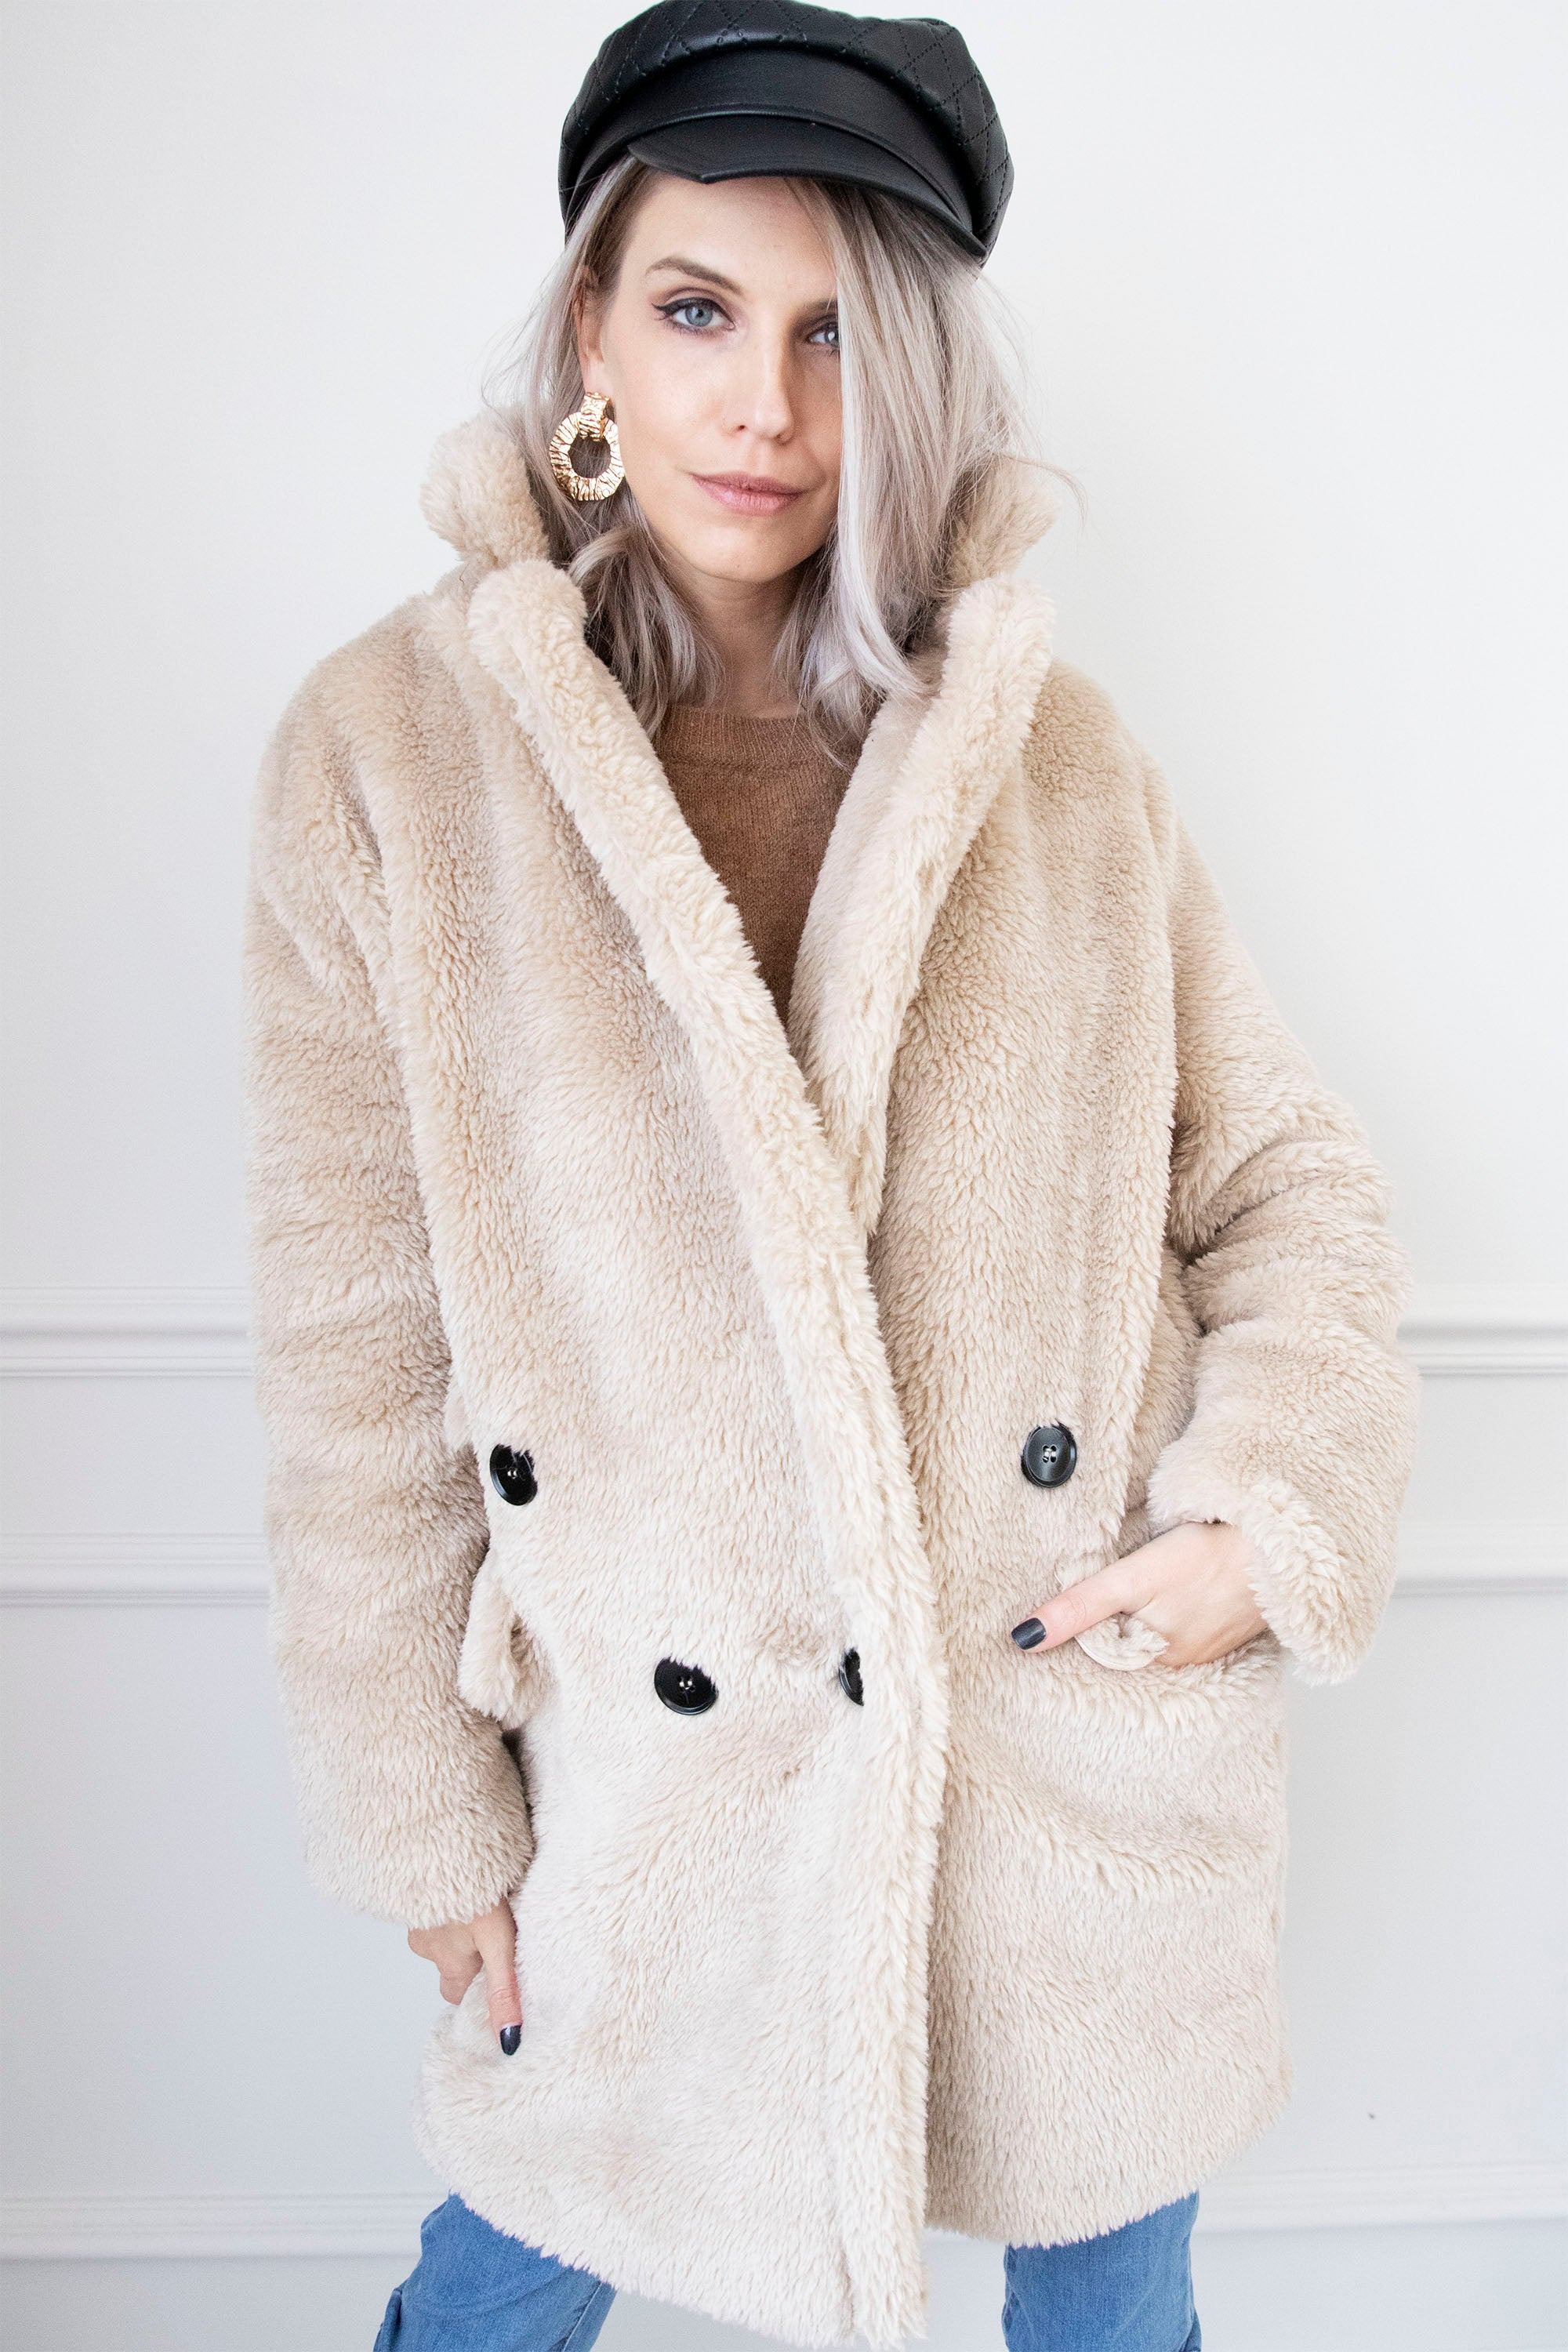 Comfy Cuddle Coat Cafe Au Lait - Mantel